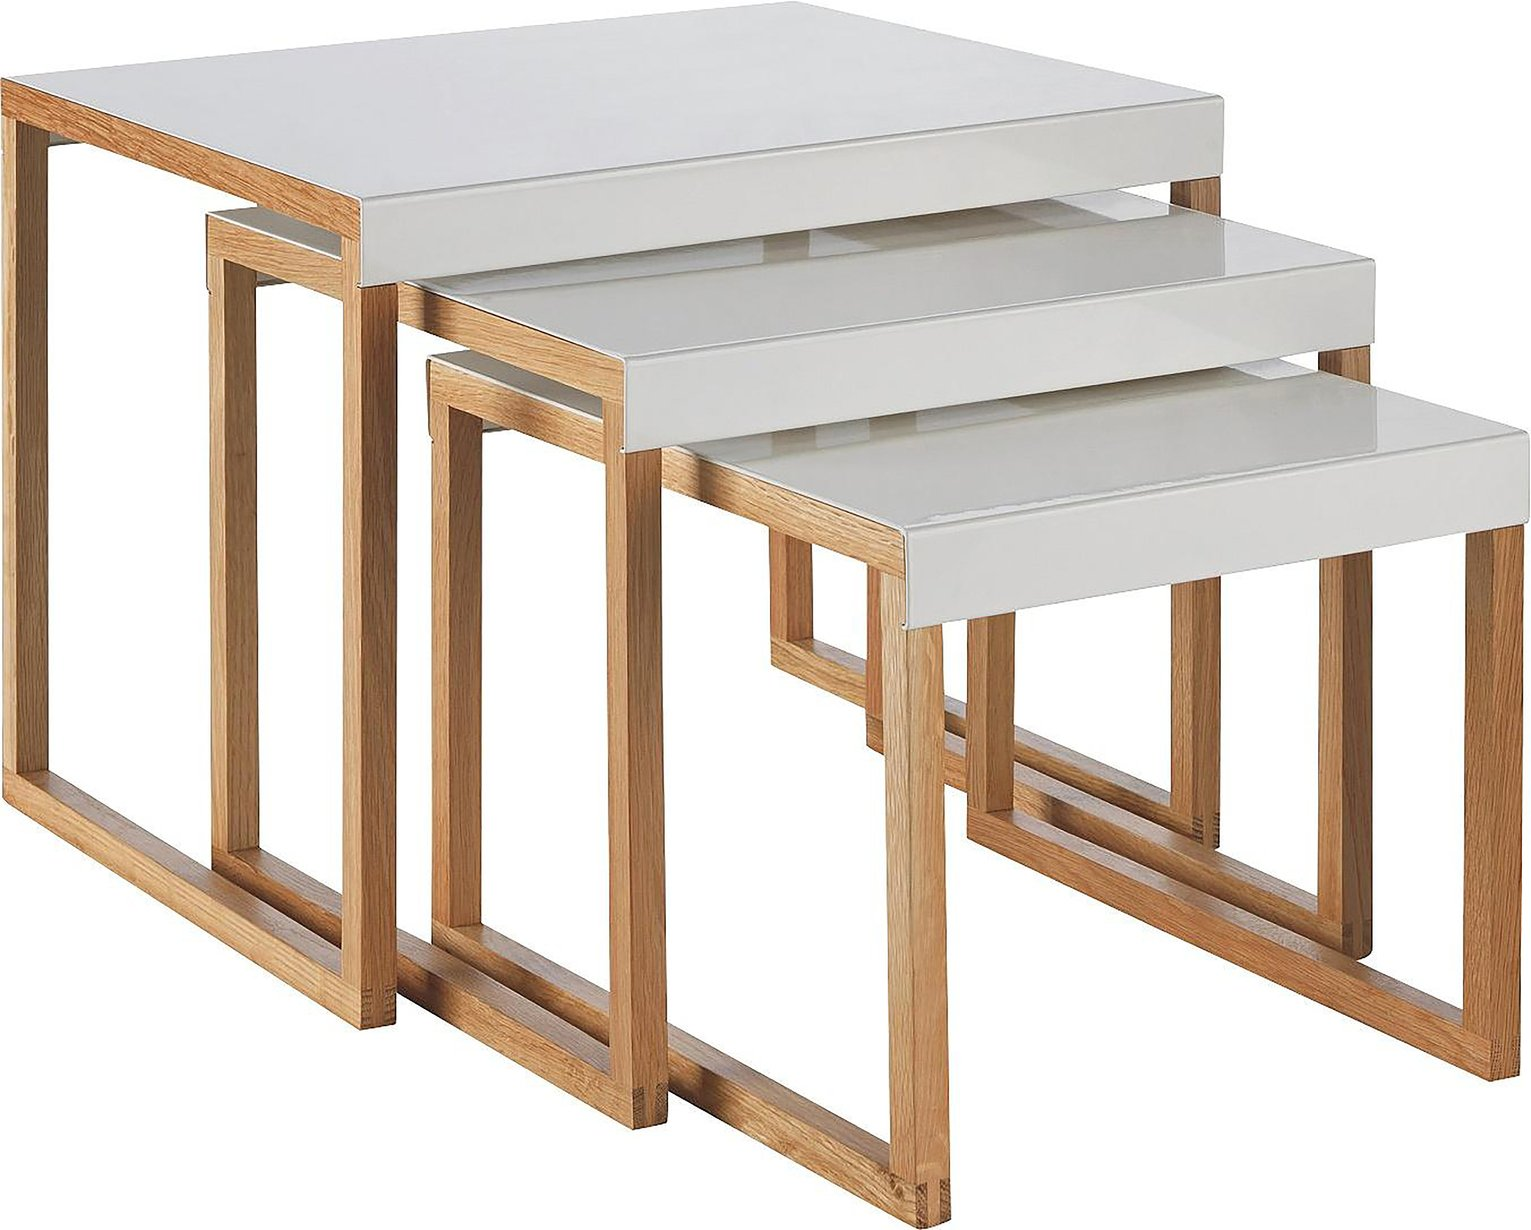 Habitat Kilo Nest of 3 Tables - White